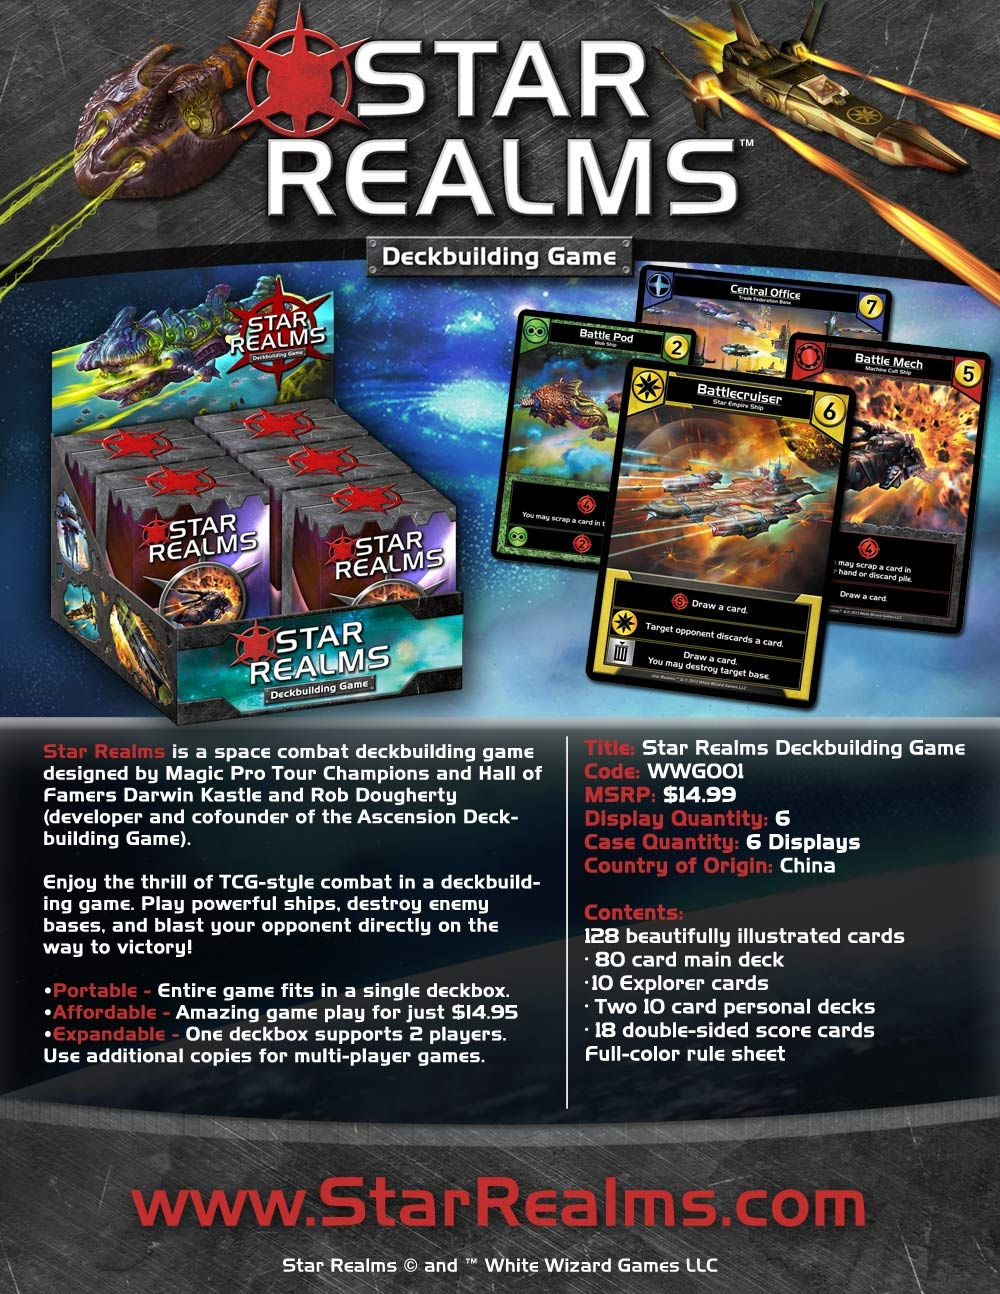 Star Realms Deck Building Game Display (6) Box Front